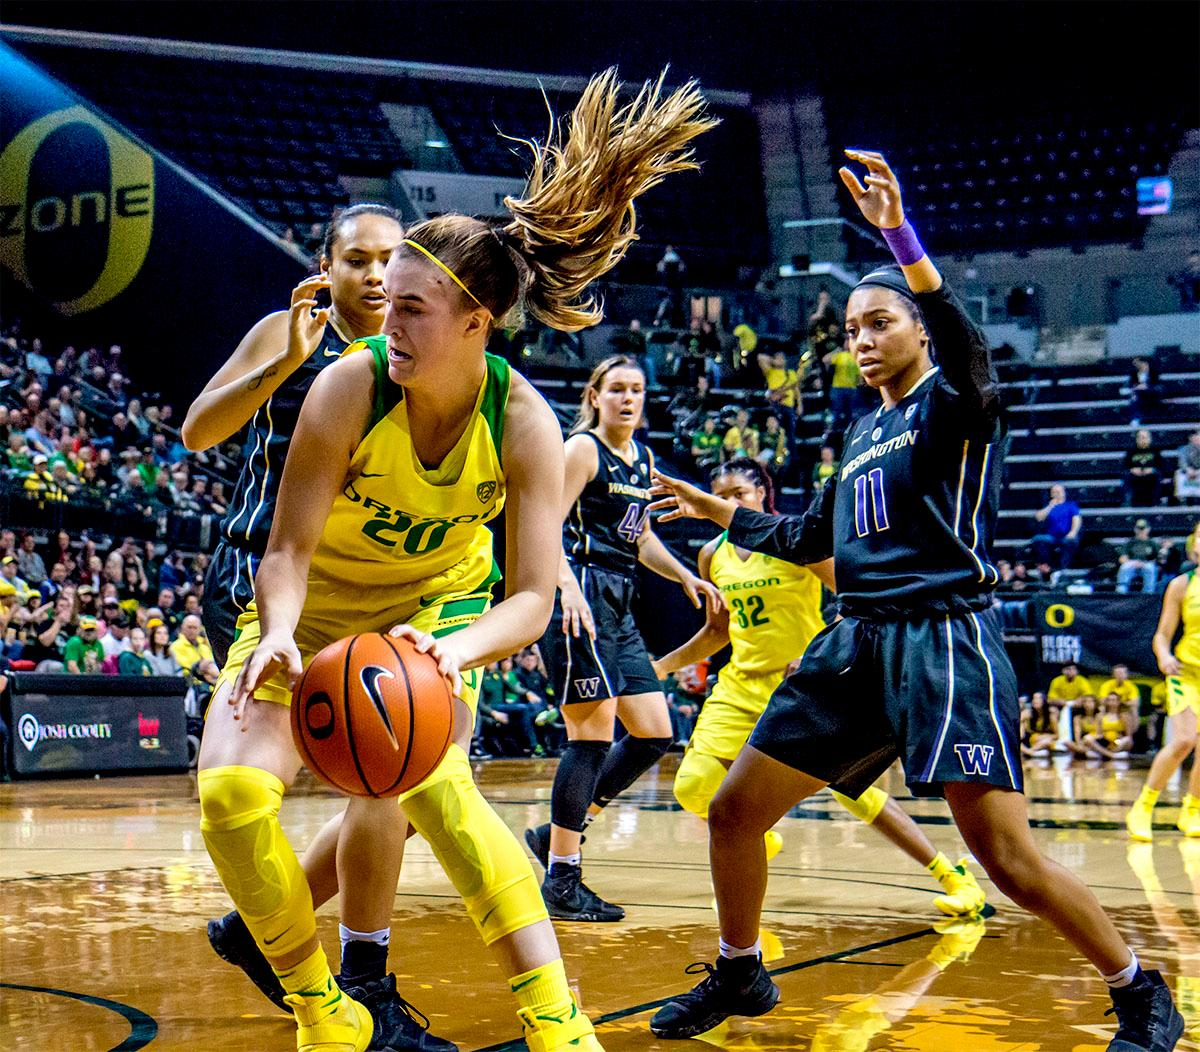 The Duck's Sabrina Ionescu (#20) looks for a path to the basket around the Huskies. The Oregon Ducks defeated the Washington Huskies 94-83 on Sunday at Matthew Knight Arena. The victory was Head Coach Kelly Graves' 500th career win. Sabrina Ionescu also set the new NCAA all time record of 8 triple doubles in just 48 games. The previous record was 7 triple doubles in 124 games, held by Susie McConnell at Penn State. The Ducks will next face off against USC on Friday January 5th in Los Angeles. Photo by Rhianna Gelhart, Oregon News Lab